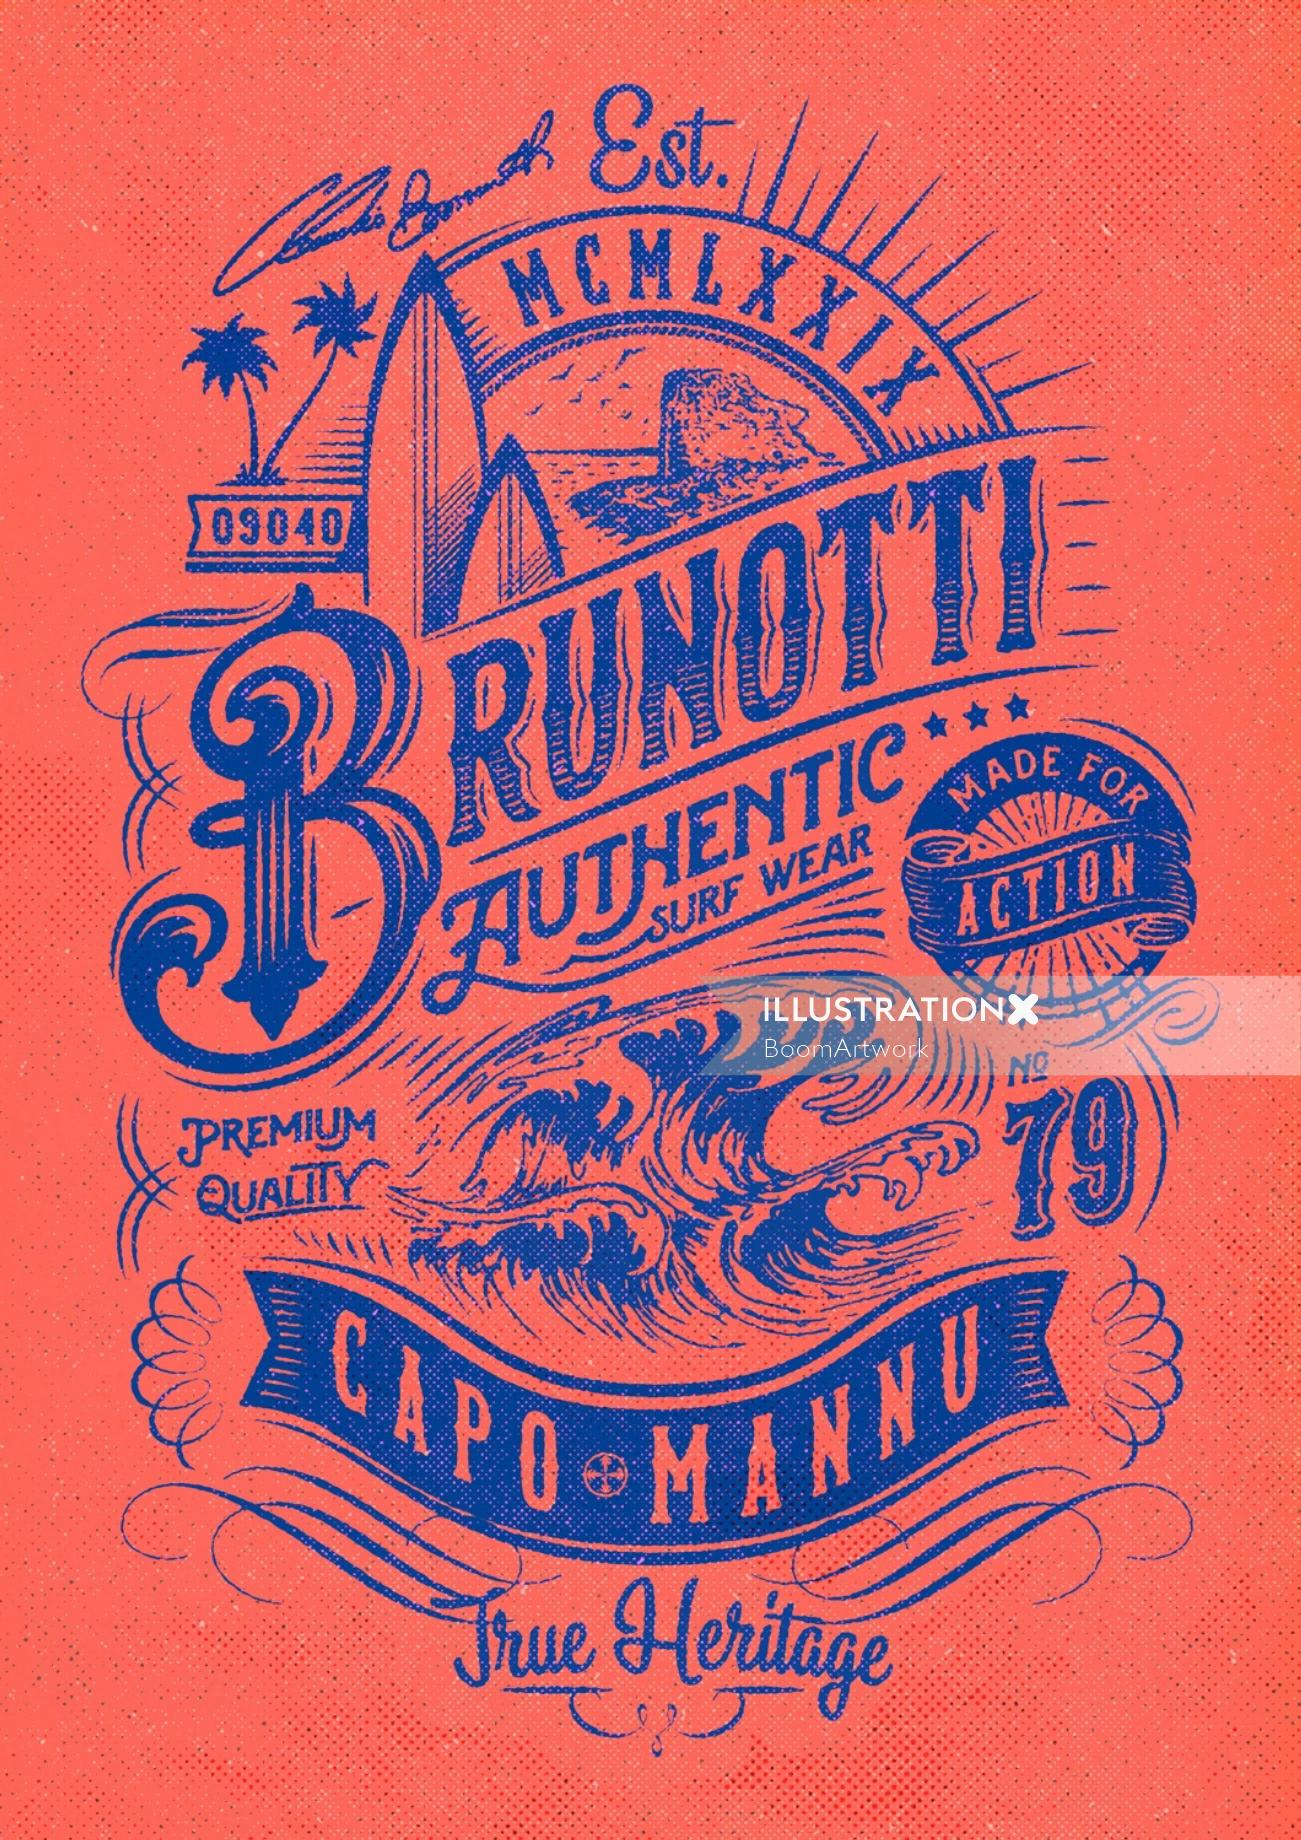 Brunotti authentic poster design